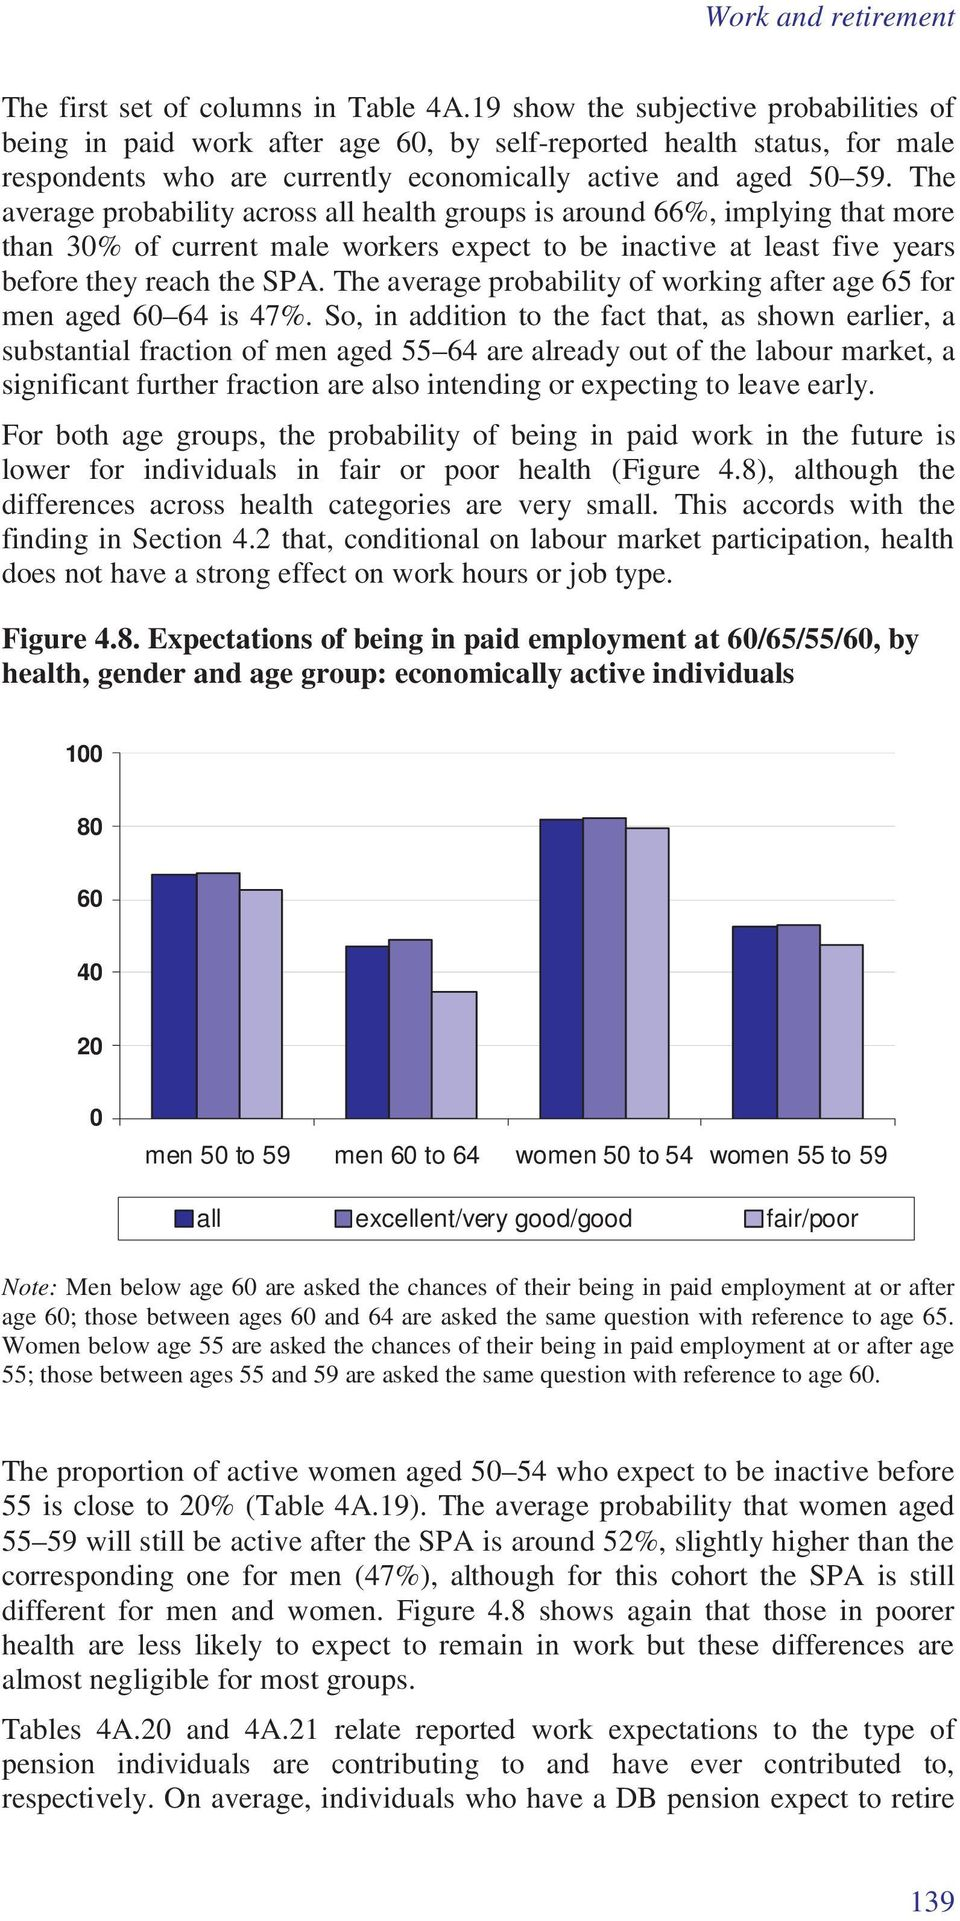 The average probability across all health groups is around 66%, implying that more than 3% of current male workers expect to be inactive at least five years before they reach the SPA.